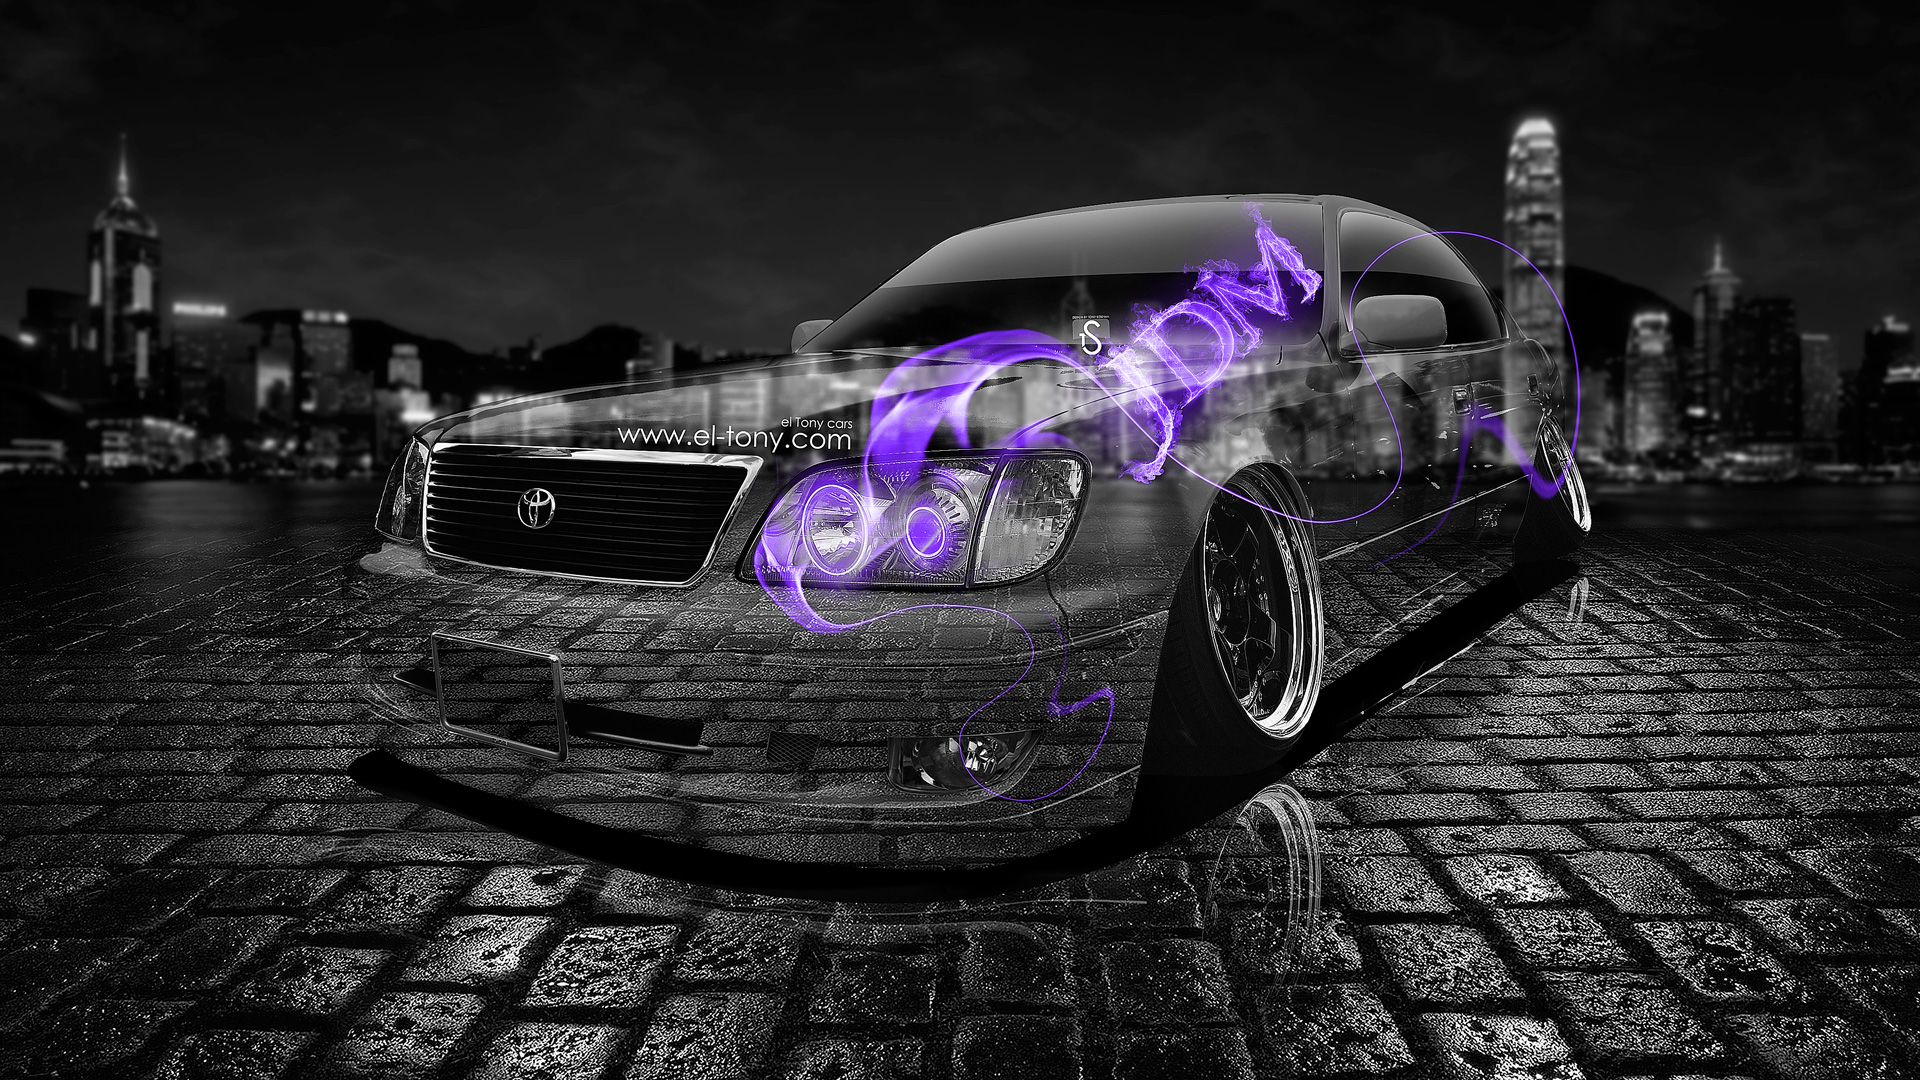 Toyota Celsior JDM Violet Fire Crystal Car 2013